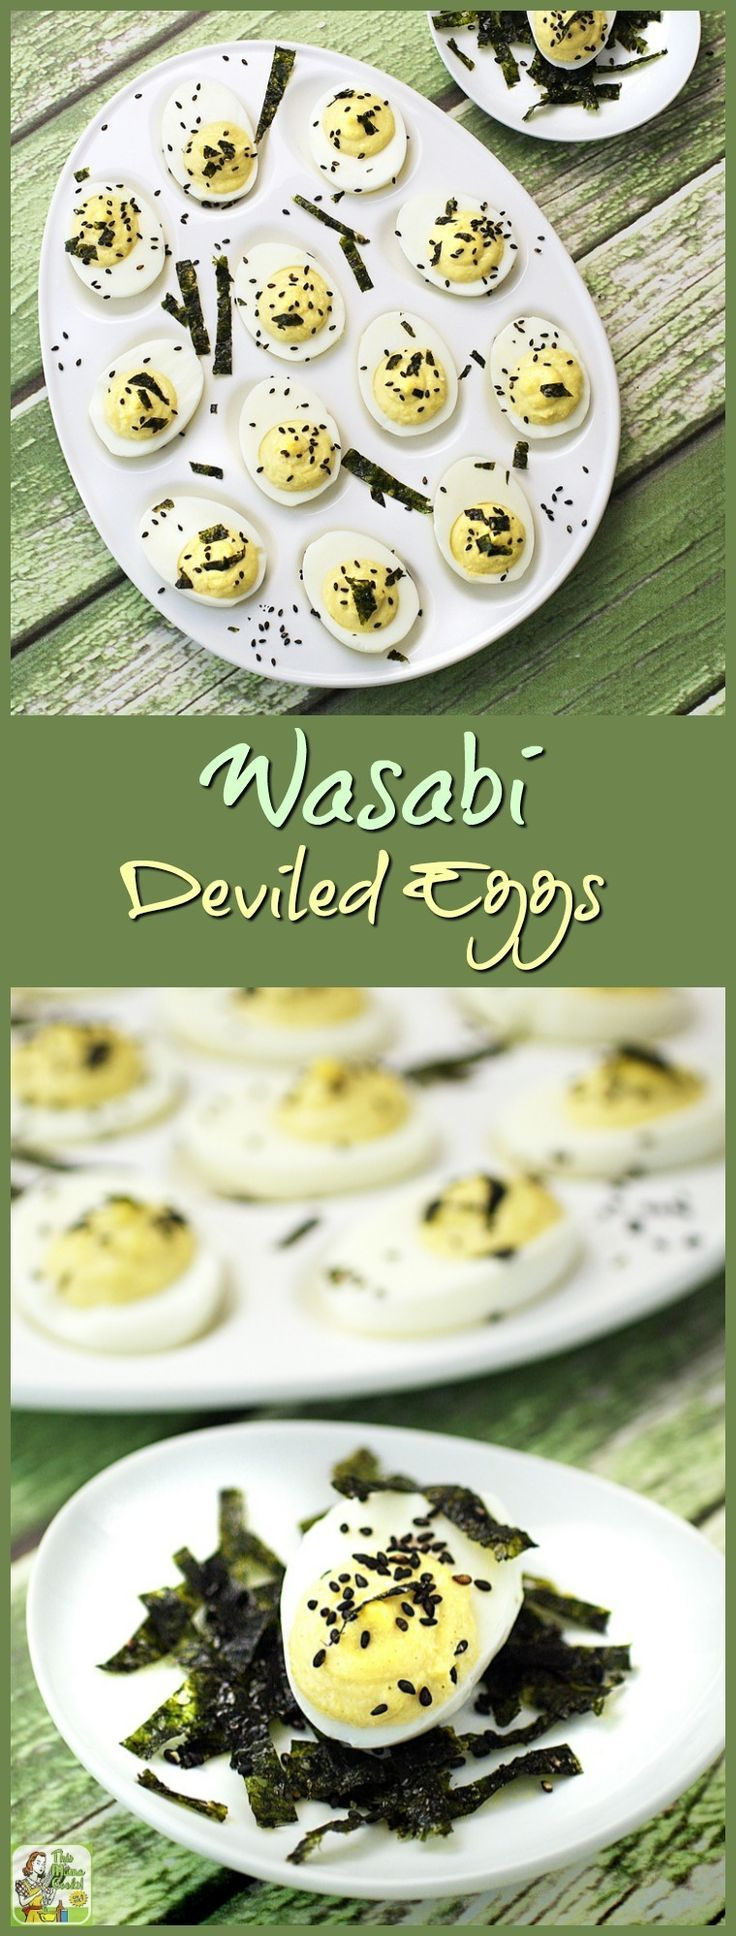 Great for a party! Wasabi Deviled Eggs are a gluten free and spicy twist on a classic deviled egg recipe. Click to get this spicy wasabi deviled eggs recipe.